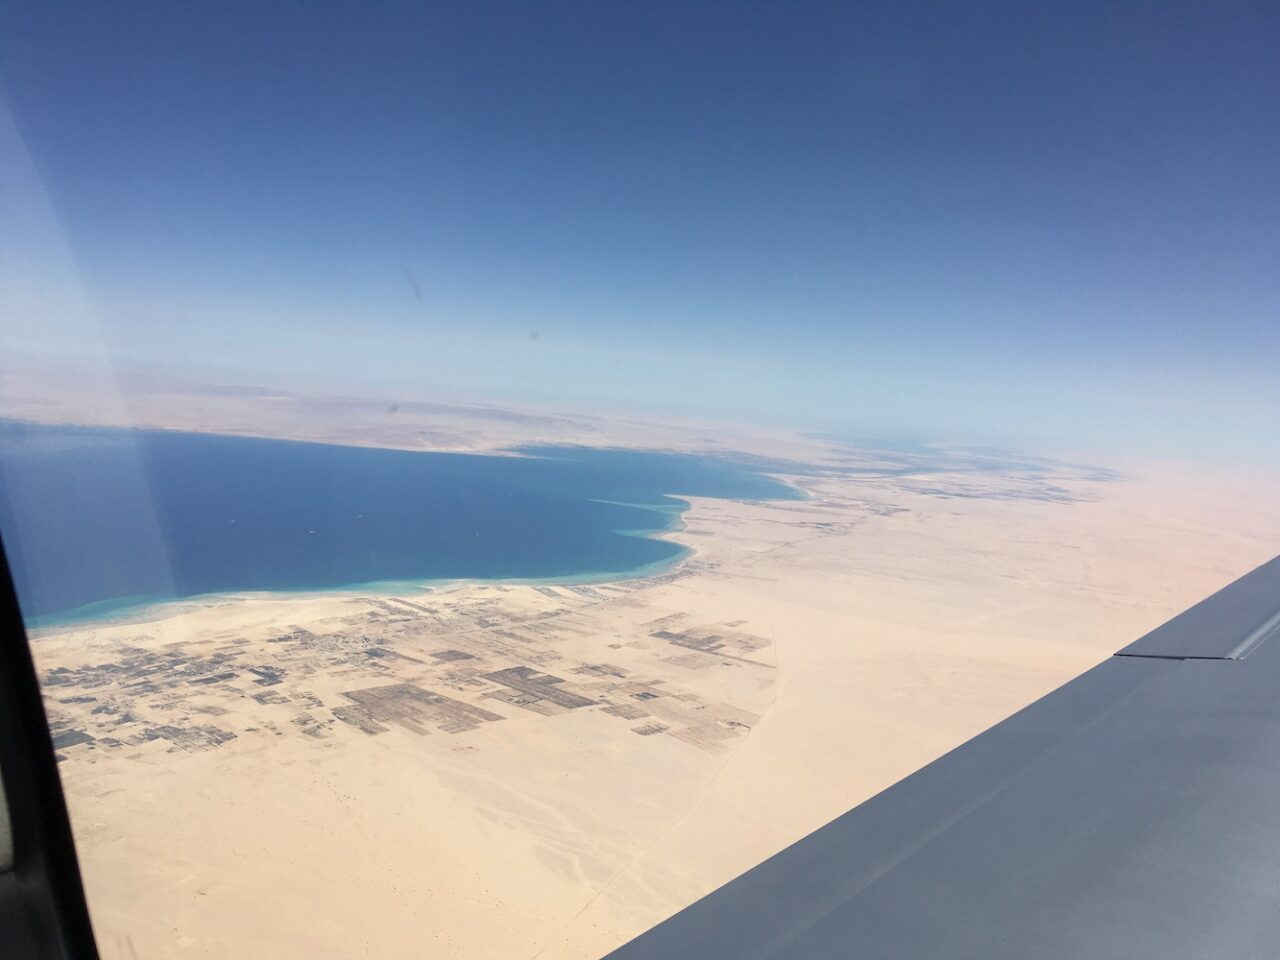 Looking towards the Suez canal